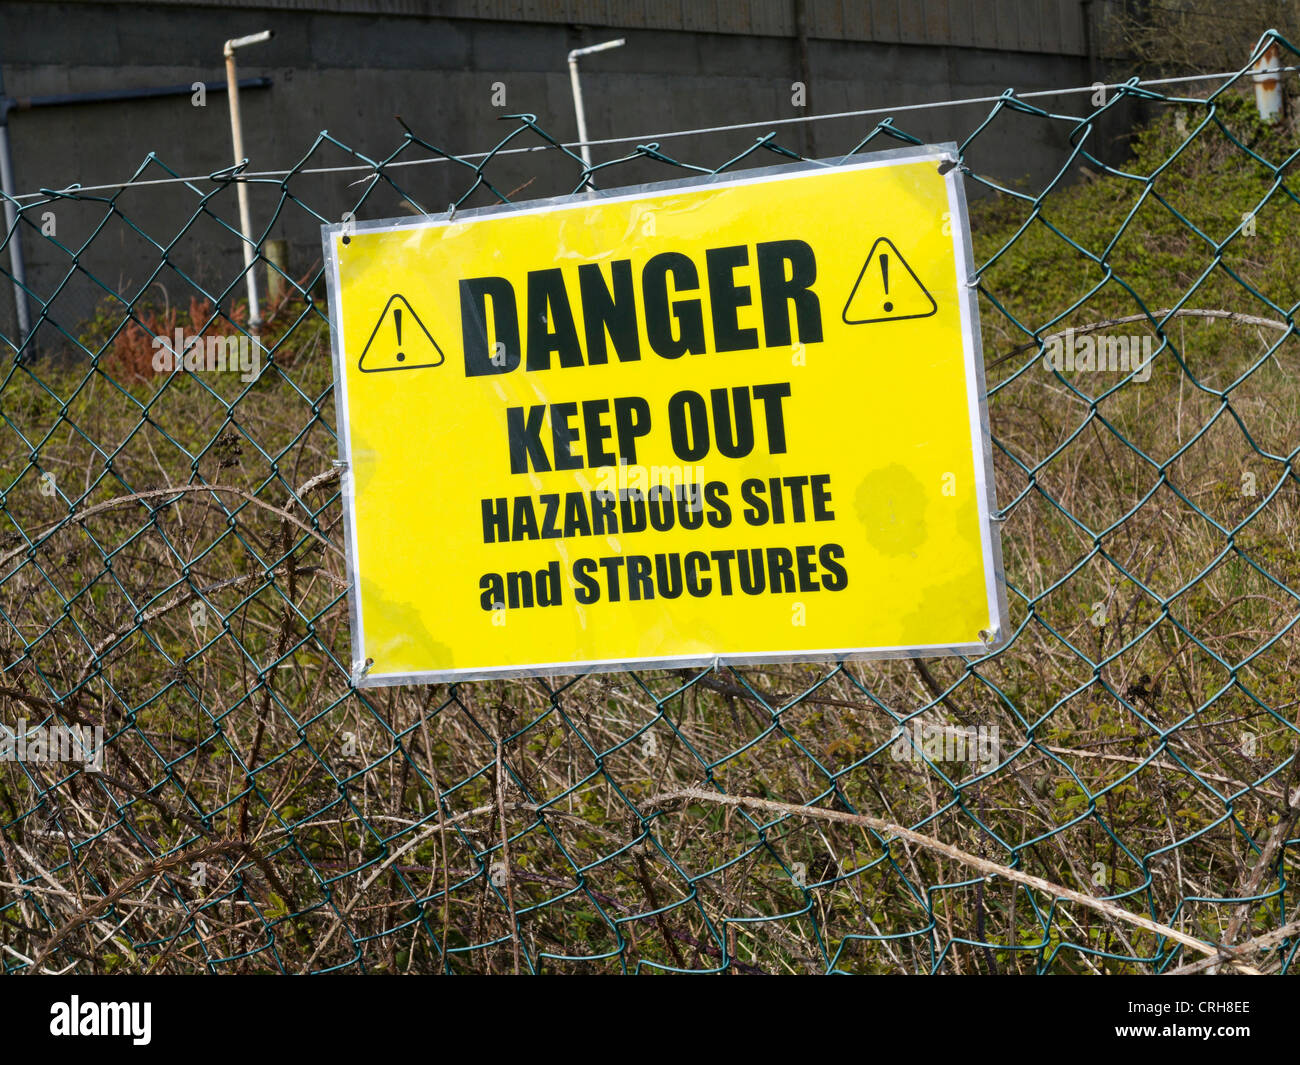 Danger Keep Out sign outside a derelict factory complex - Stock Image